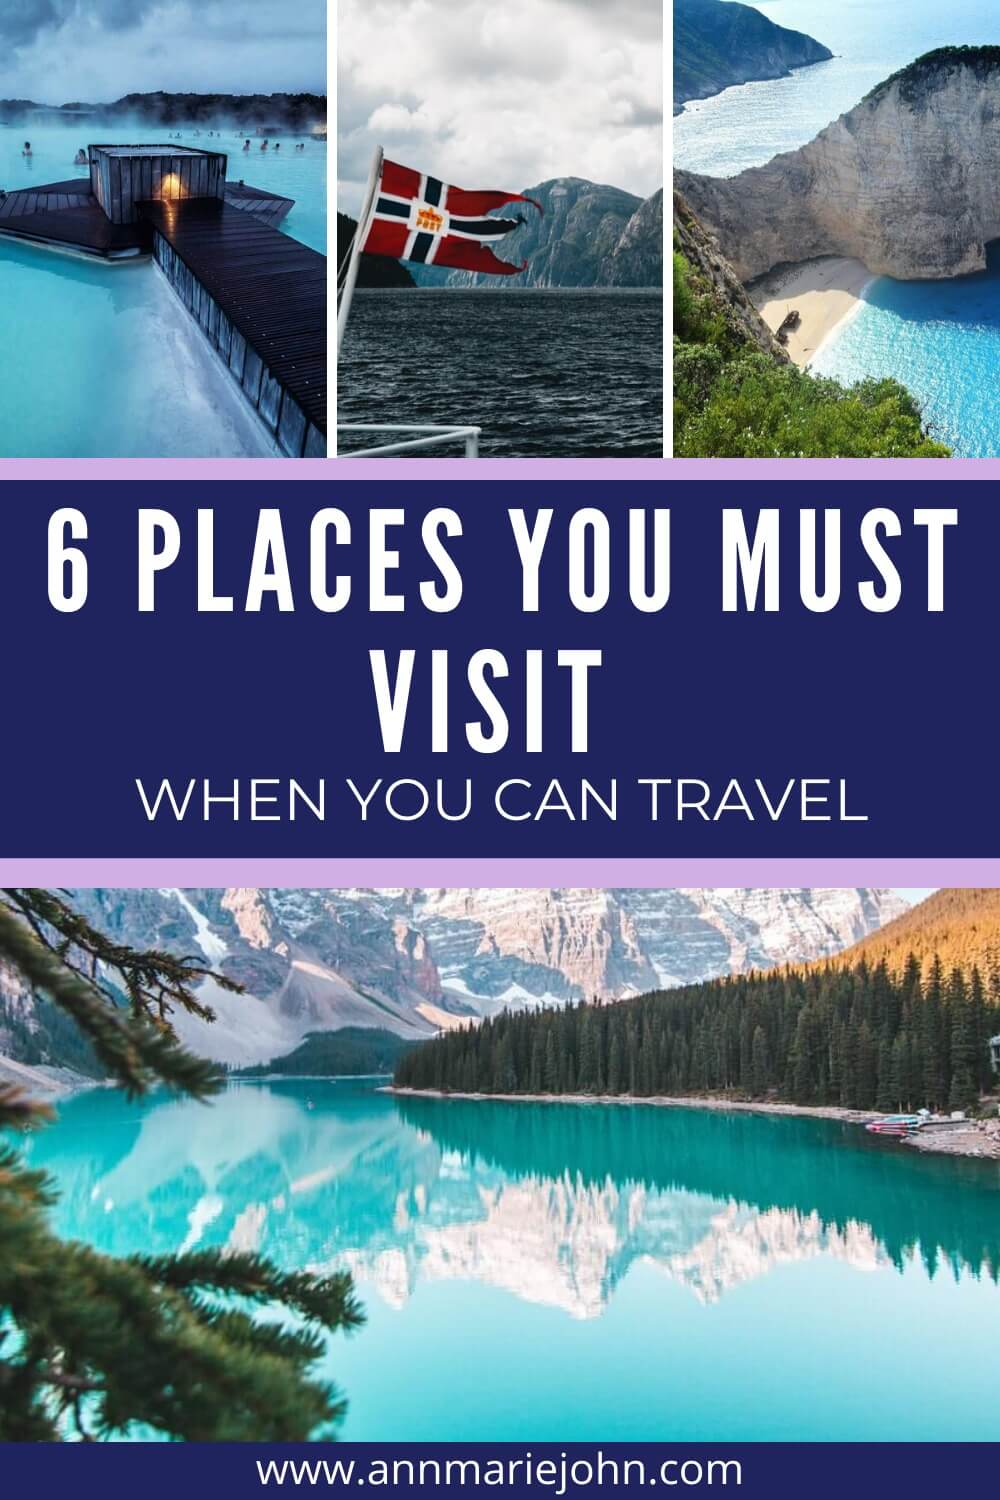 6 Places You Must Visit When You Can Travel